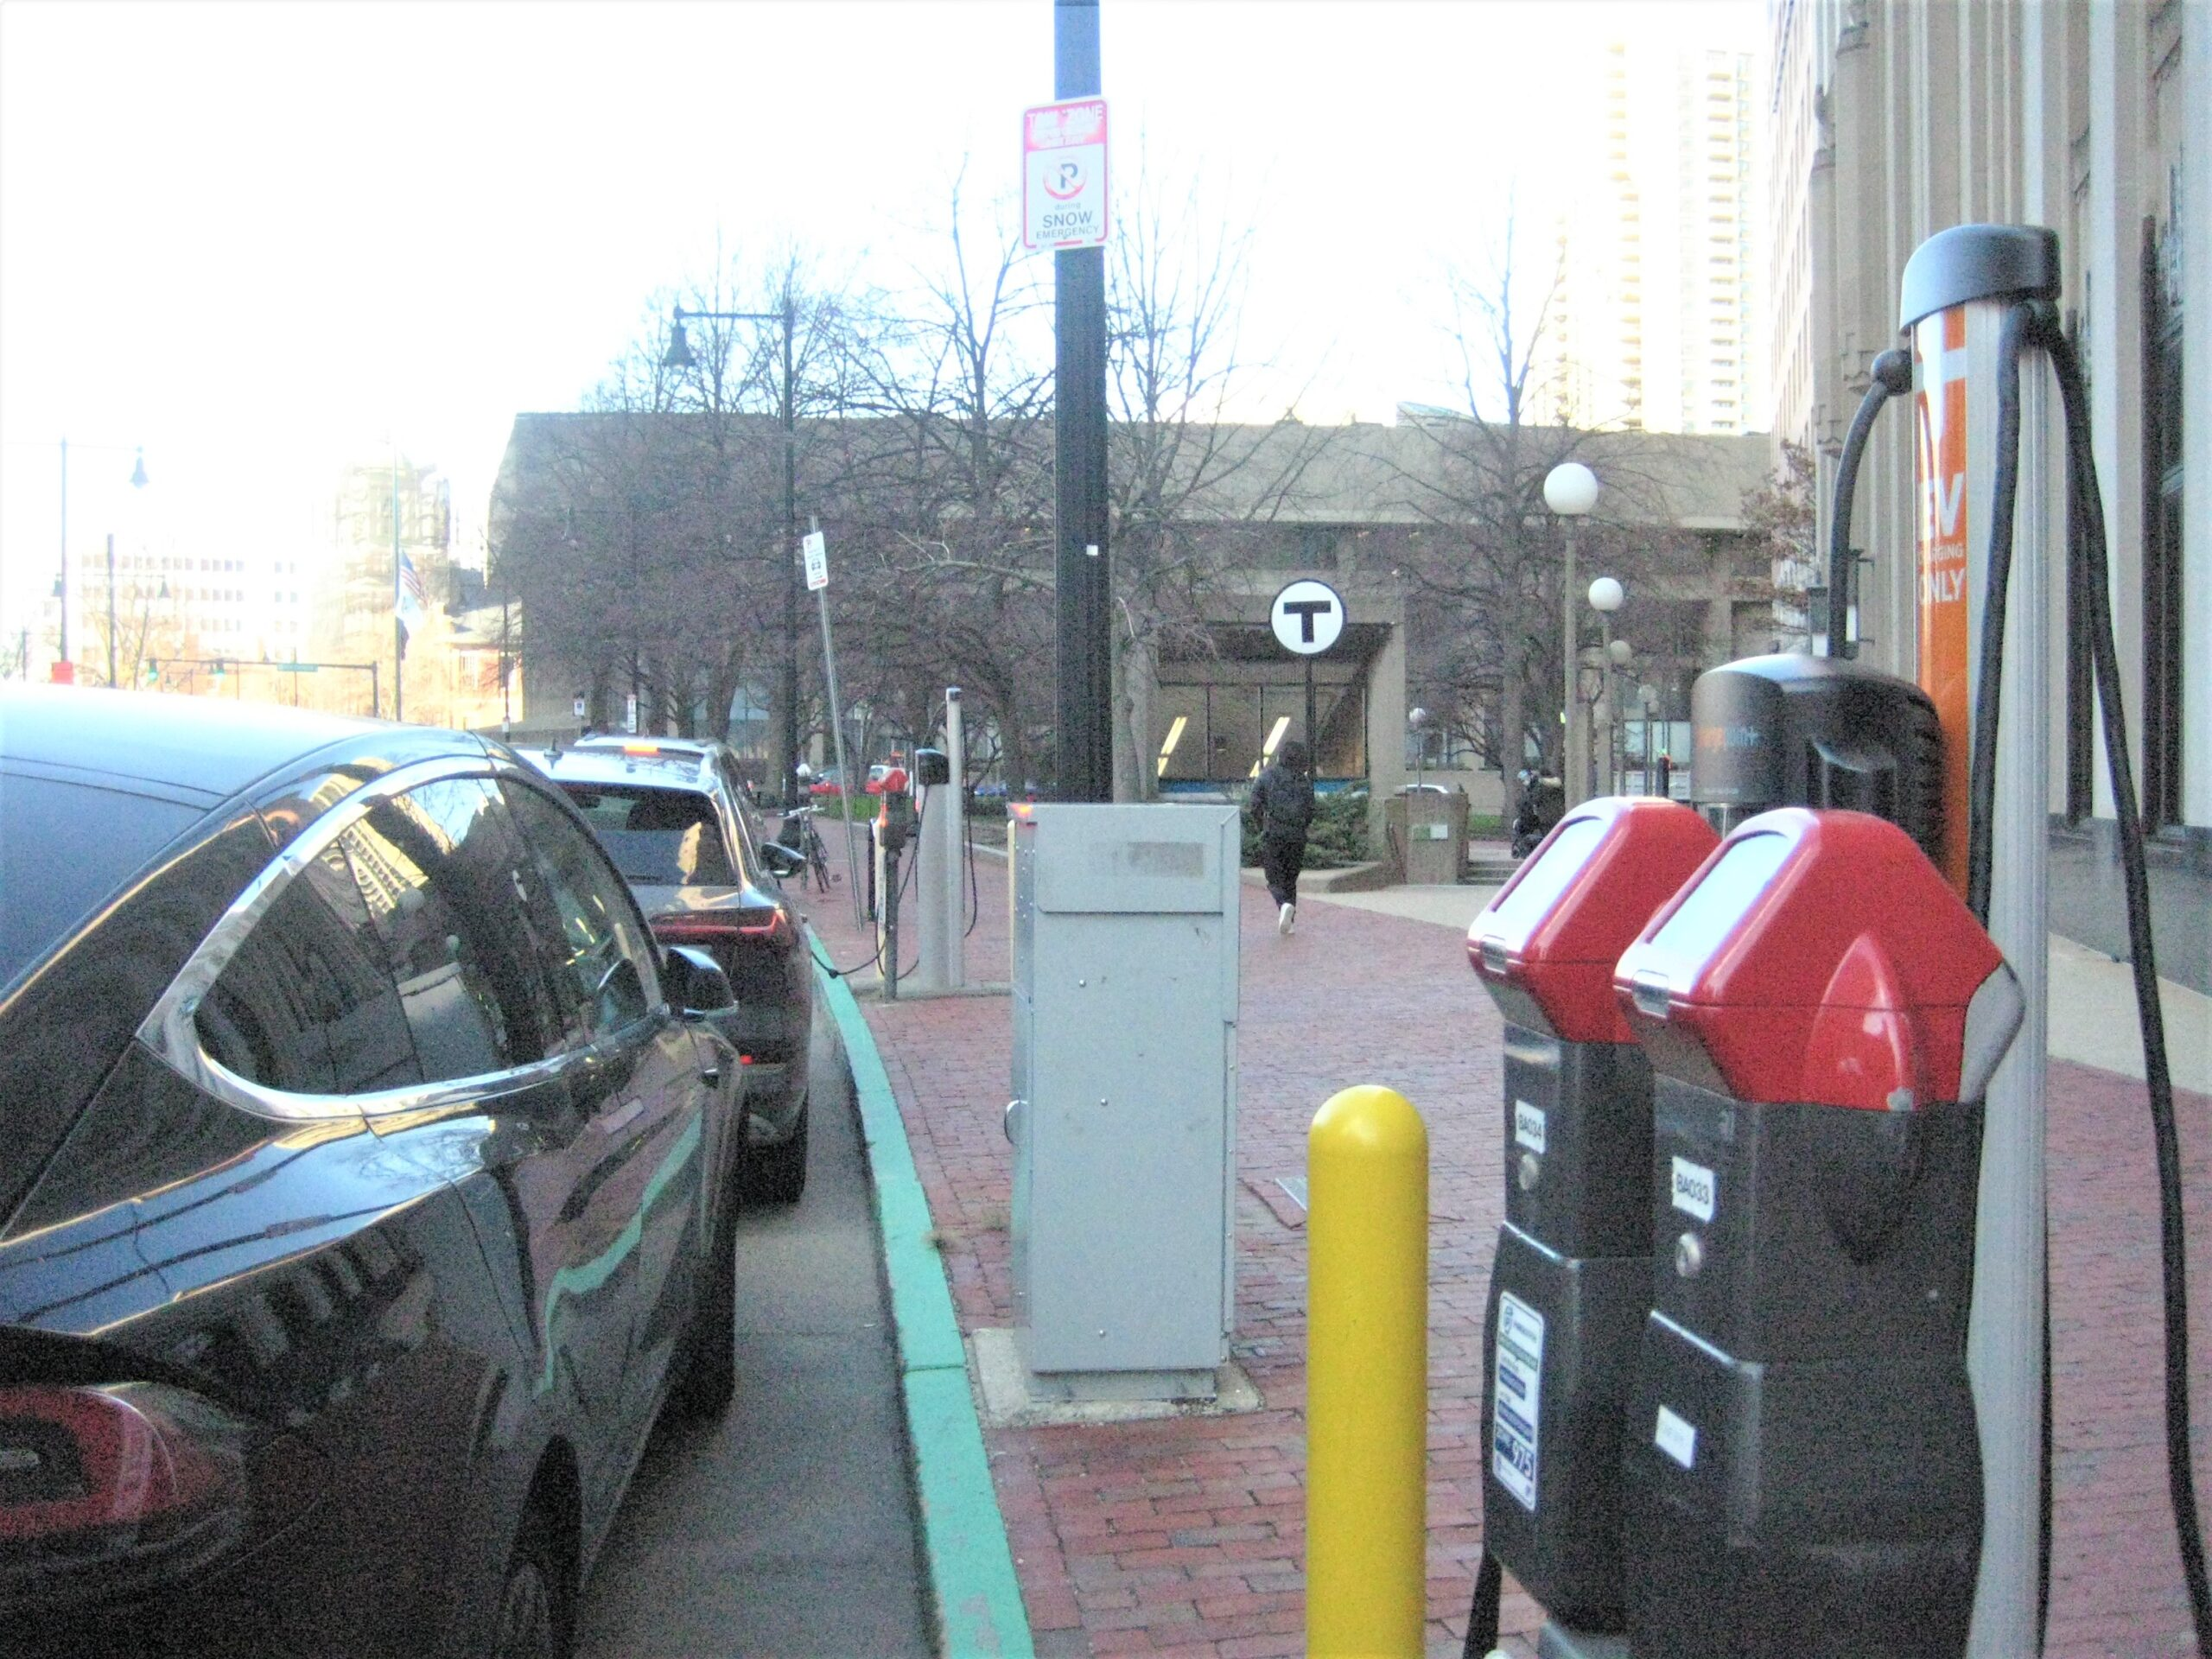 parallel parked electric vehicles charging at charging stations on the side of the road